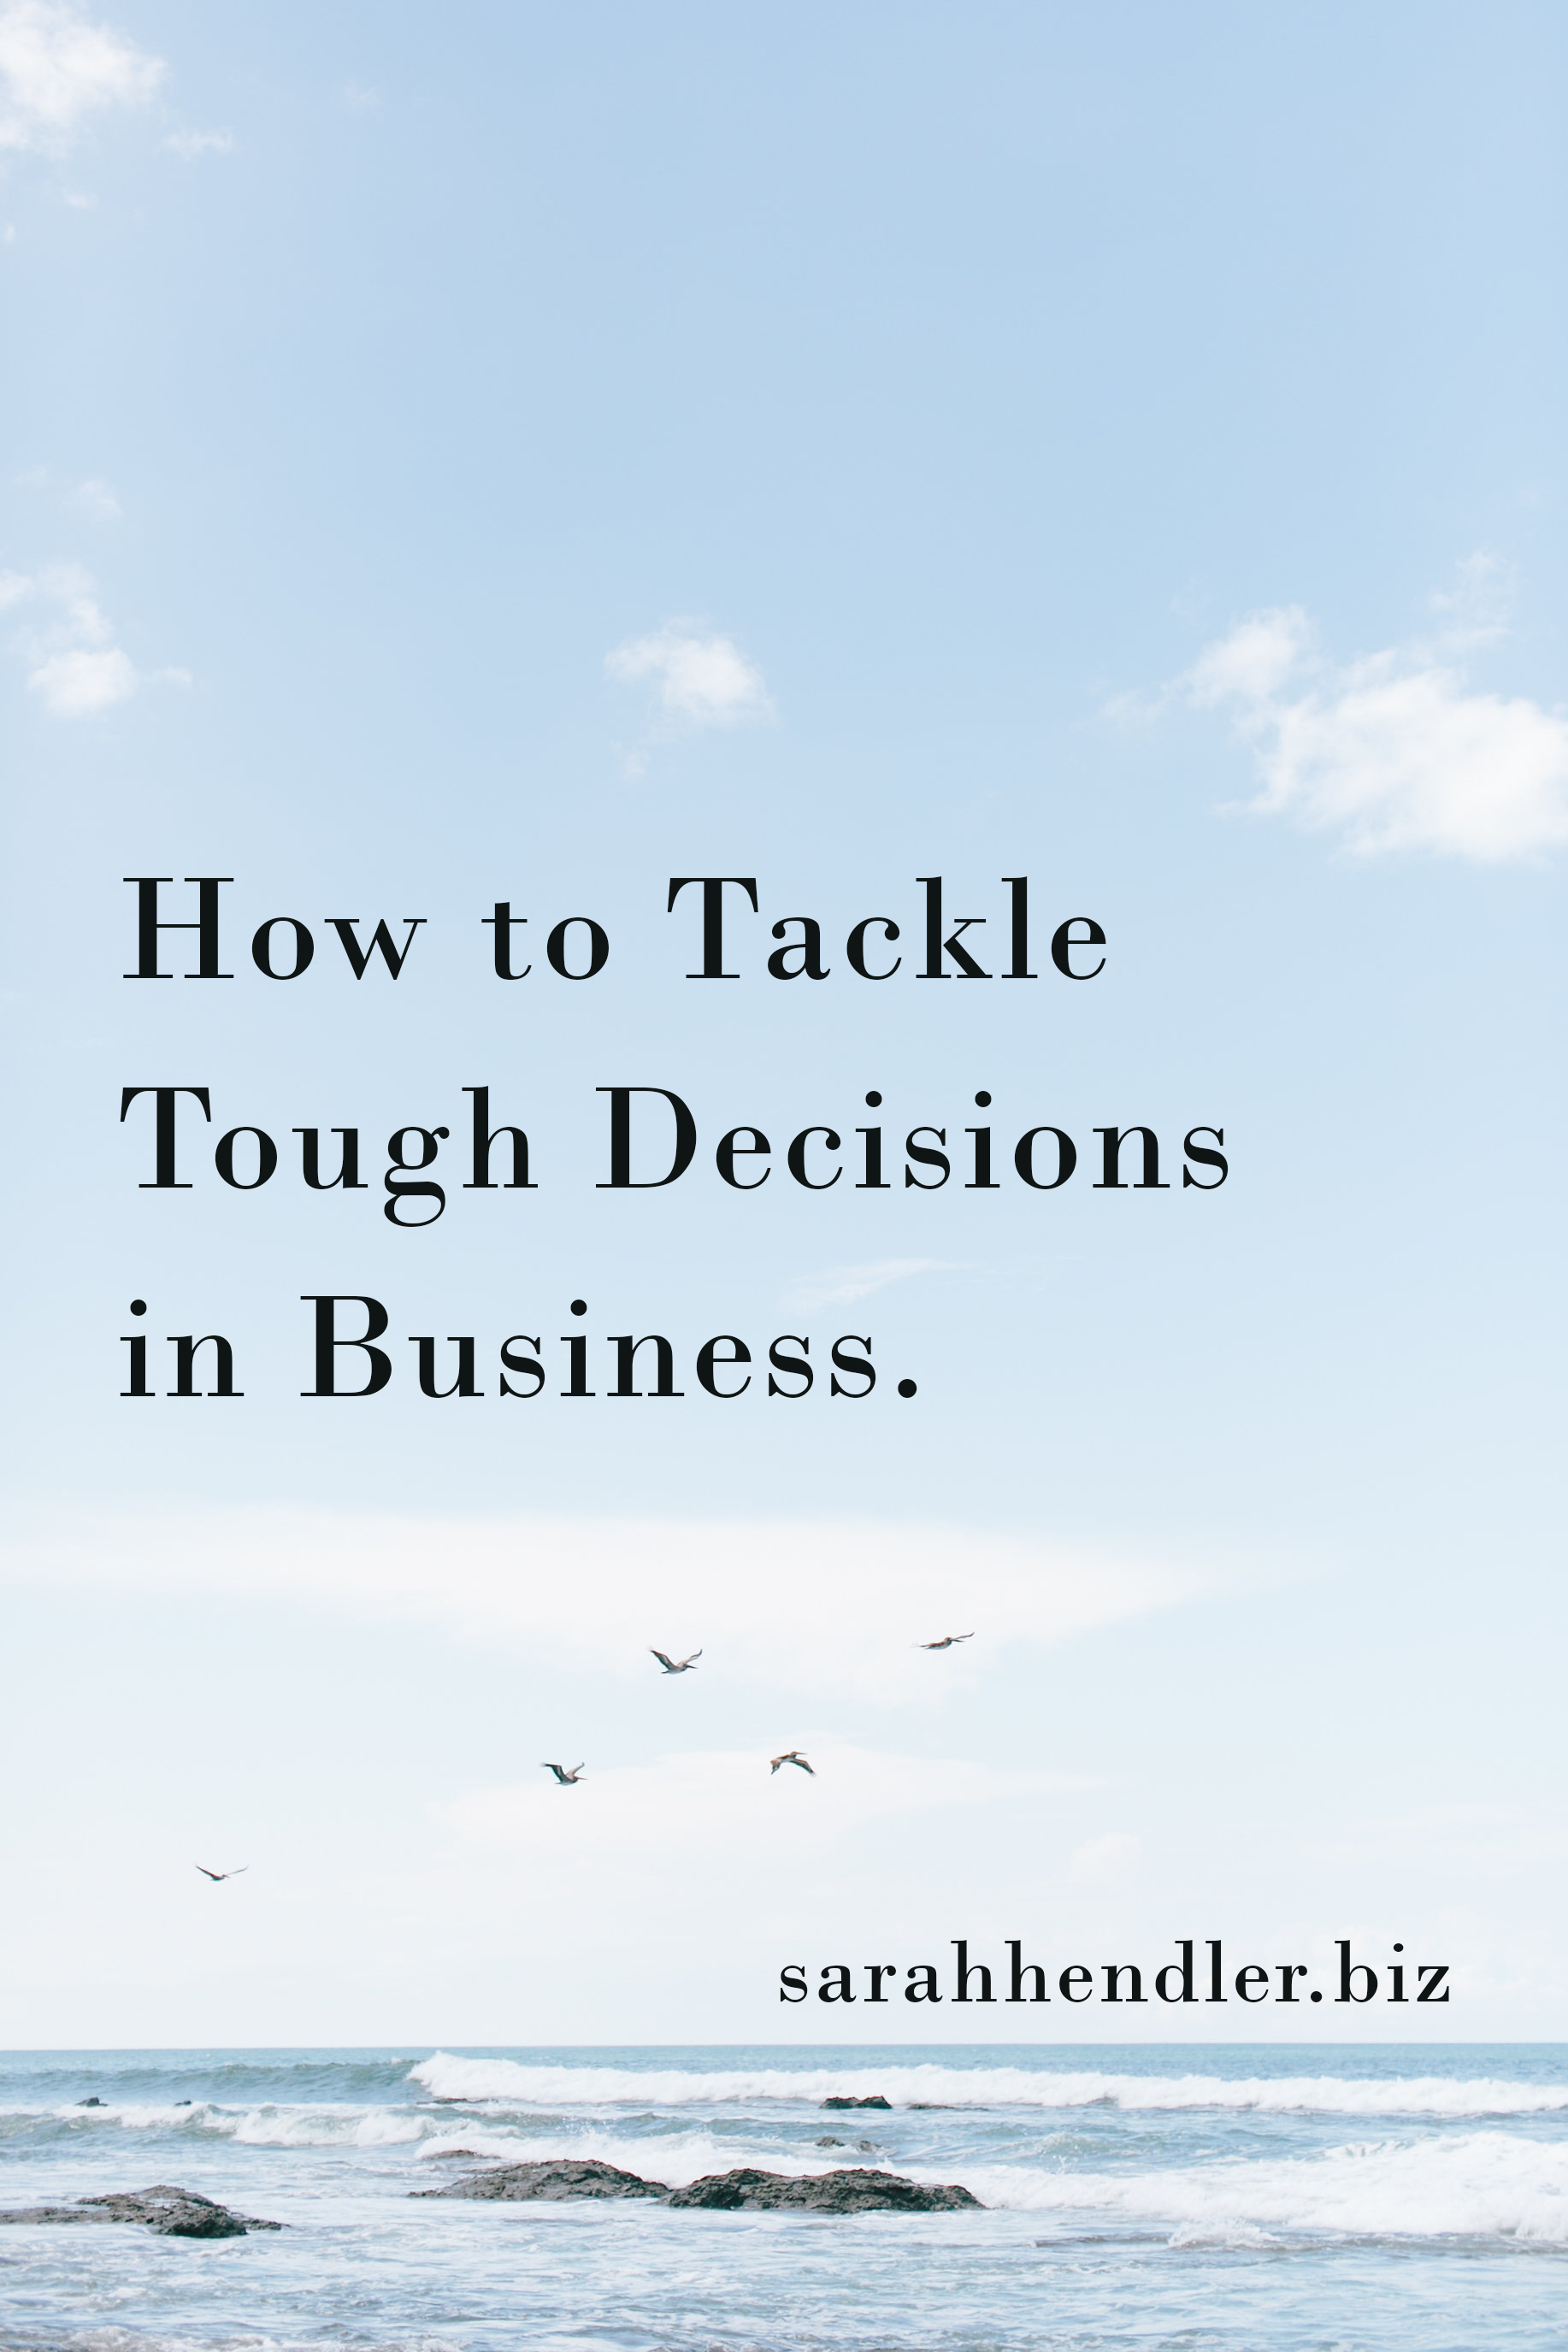 how to tackle tough decisions in business.png